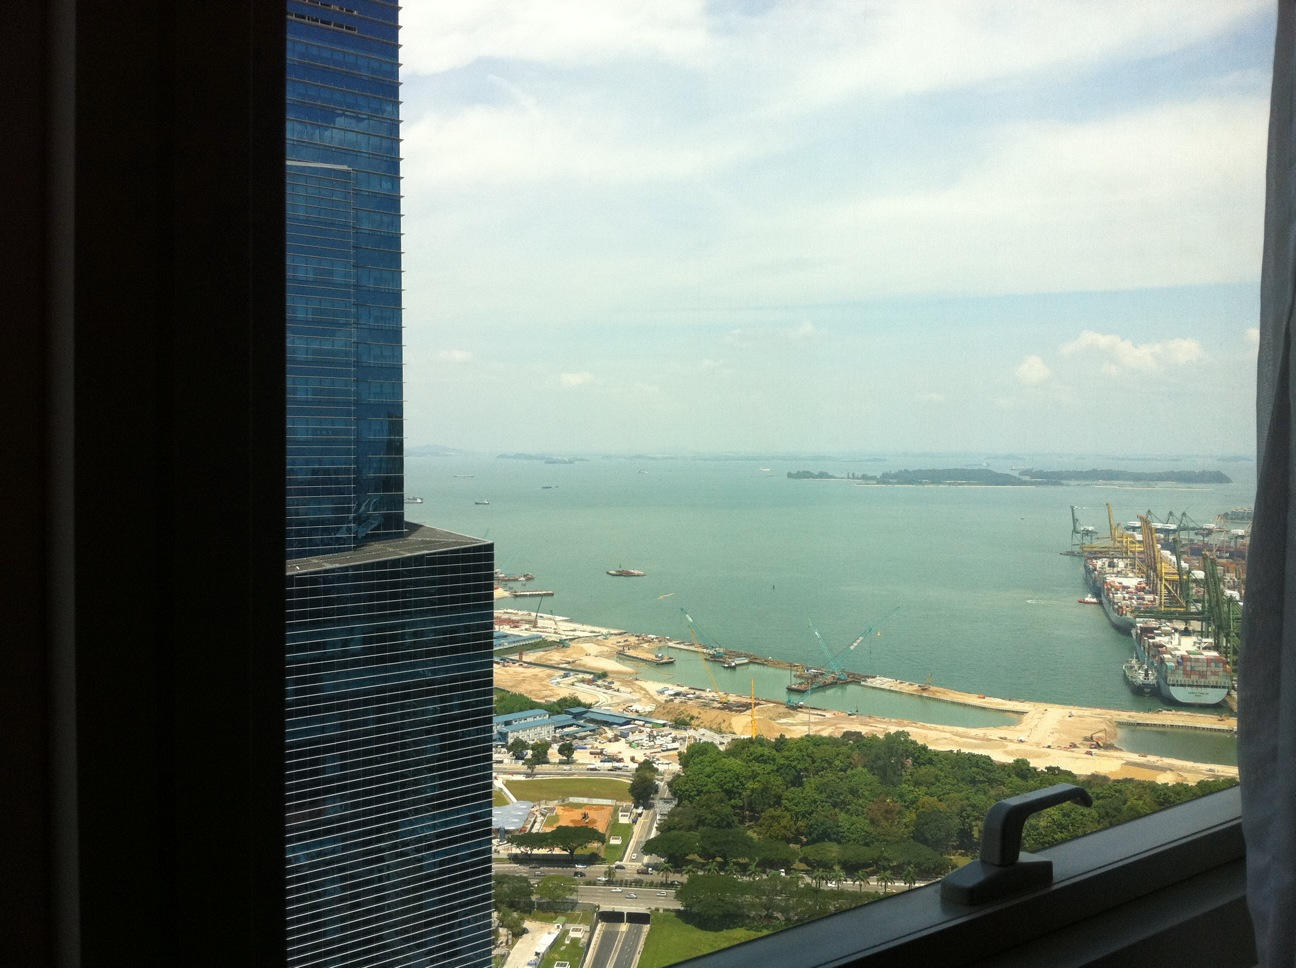 view-to-the-right-ocean-from-stack-21-at-The-Sail-at-Marina-Bay